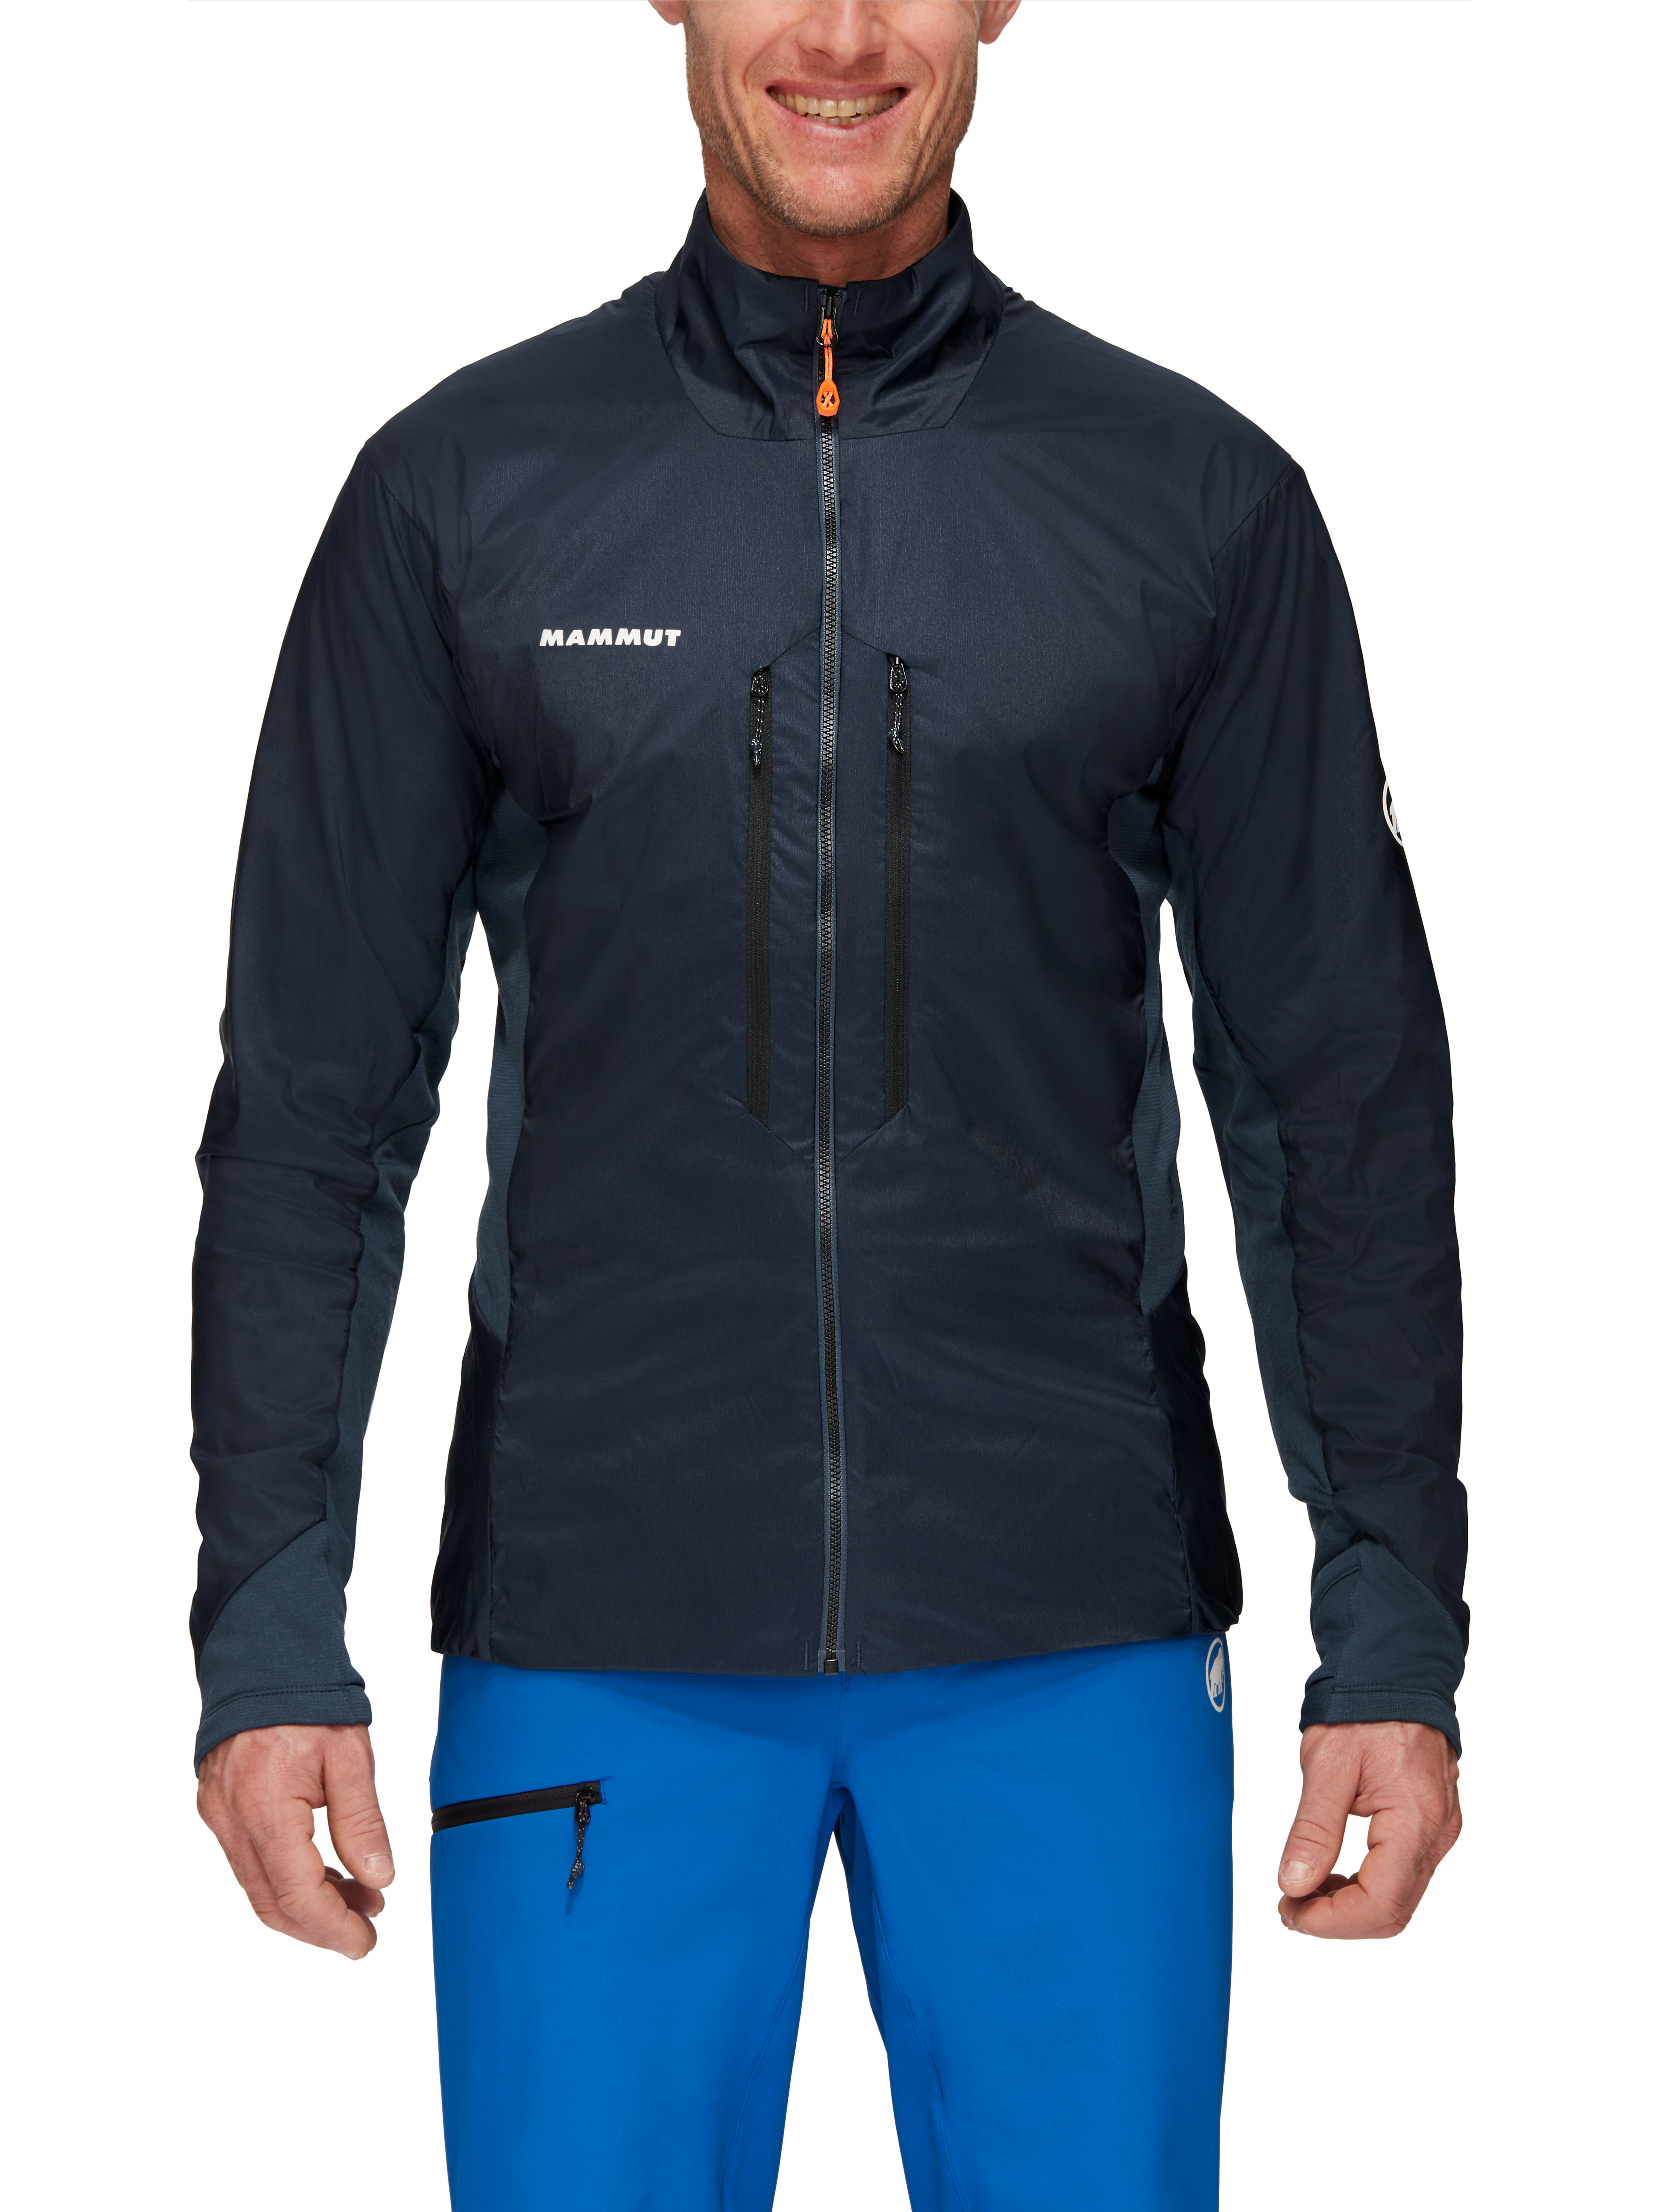 Eigerjoch IN Hybrid Jacket Men product image